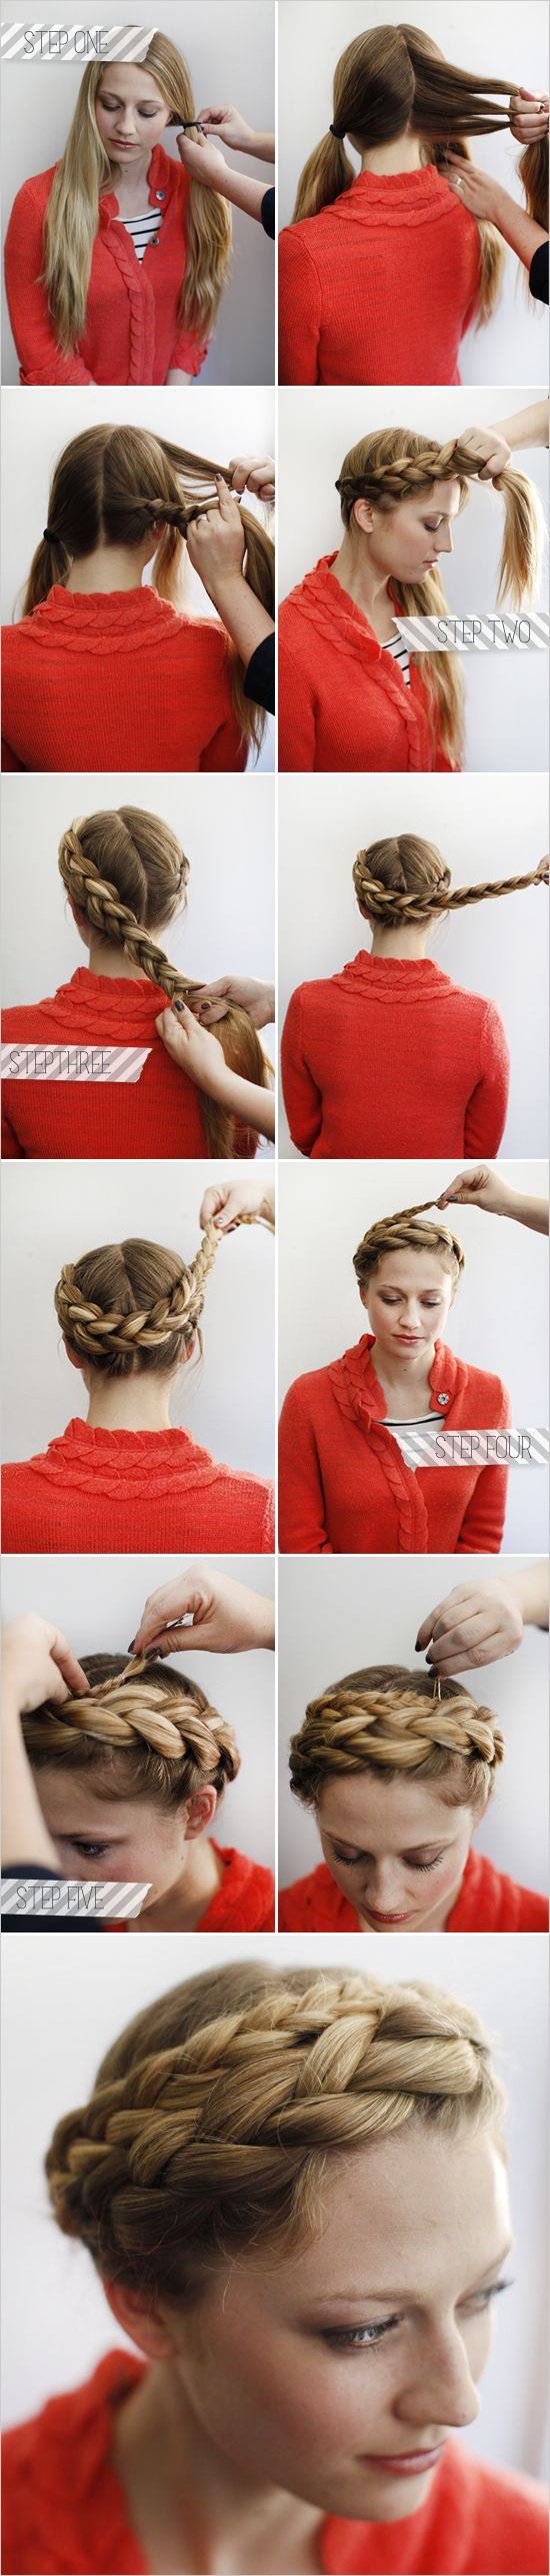 Hair tutorial : How to halo braid. I am confused a little bit about the step two, but I still like this tutorial. I can't wait to try it..